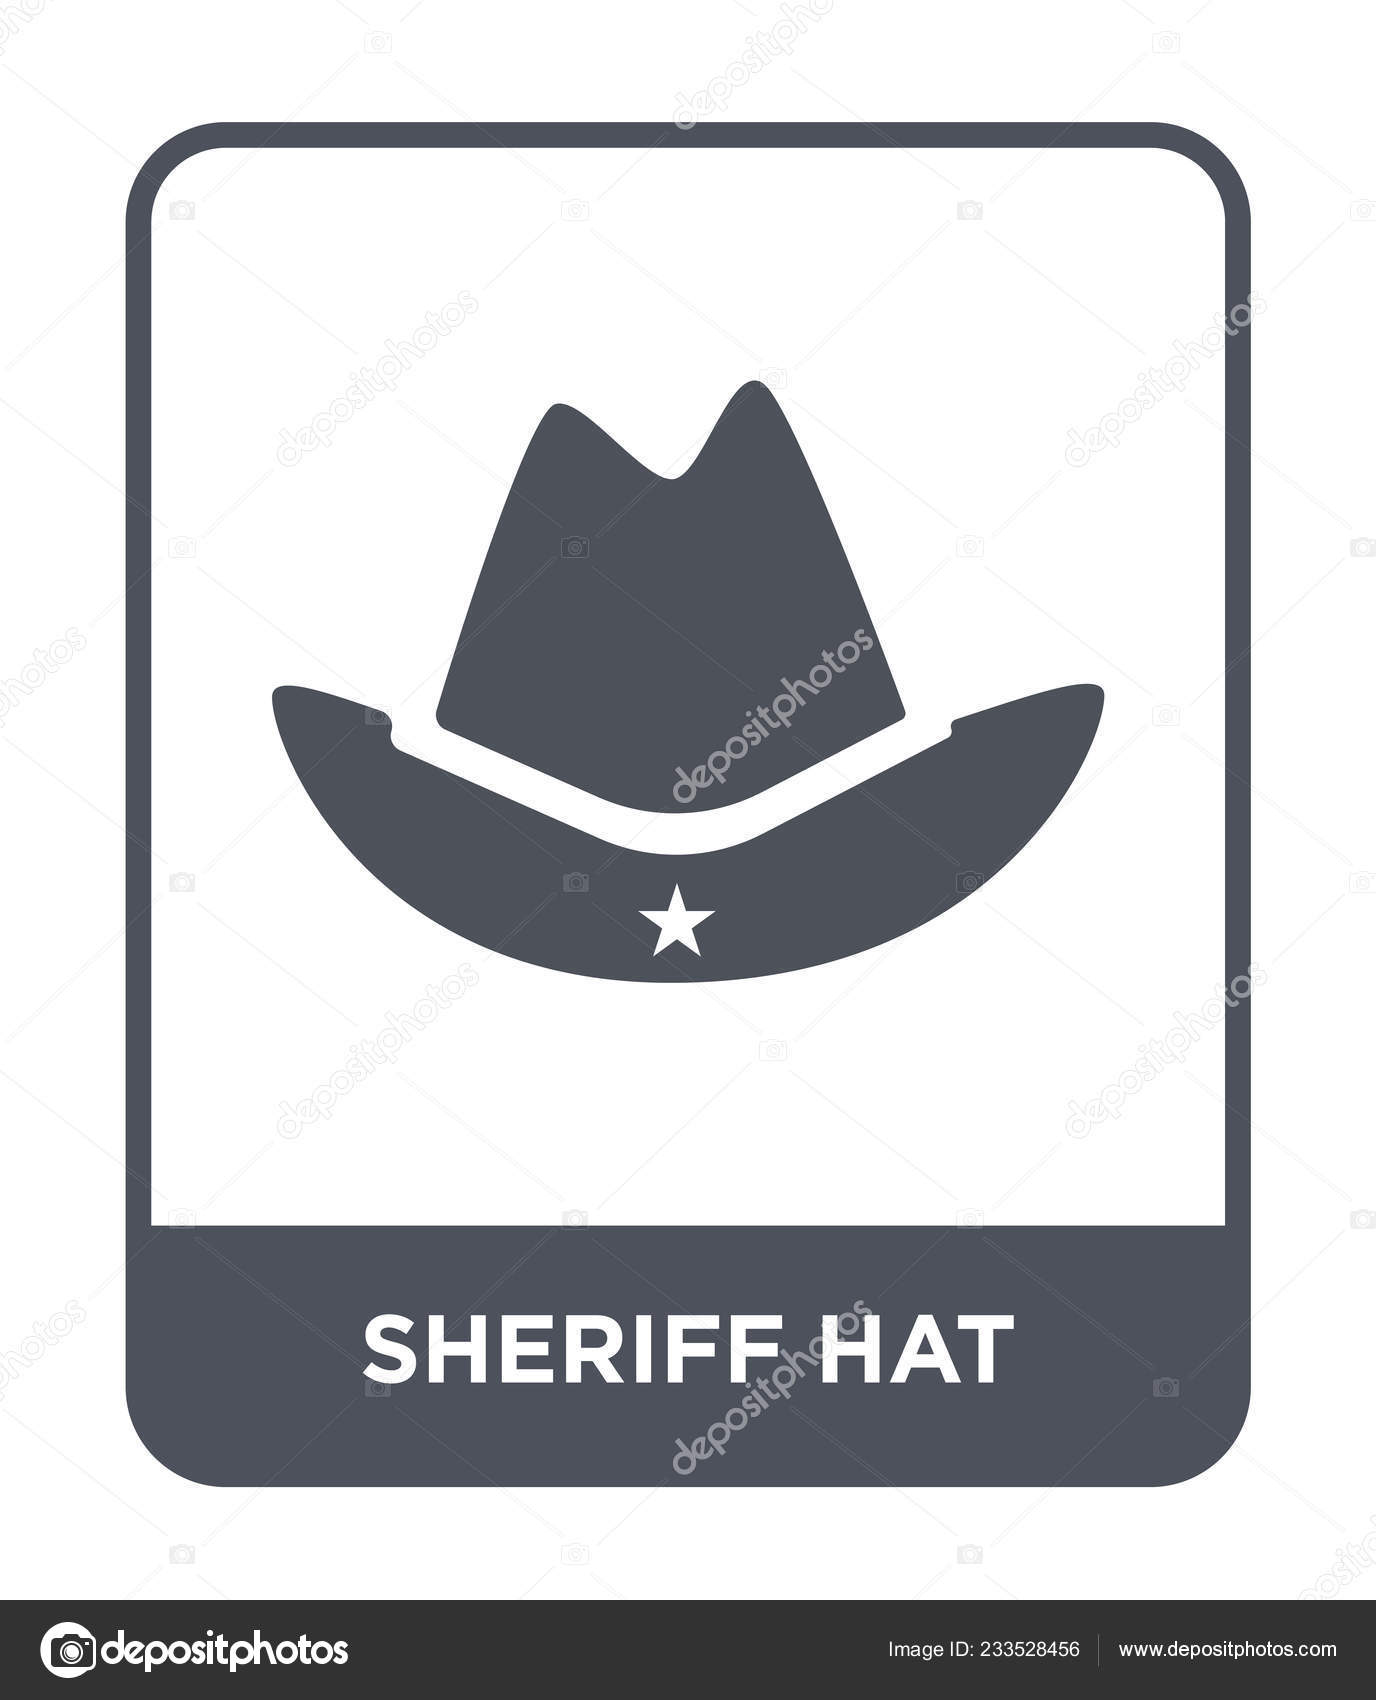 c5e2b570 Sheriff hat icon in trendy design style. sheriff hat icon isolated on white  background. sheriff hat vector icon simple and modern flat symbol.